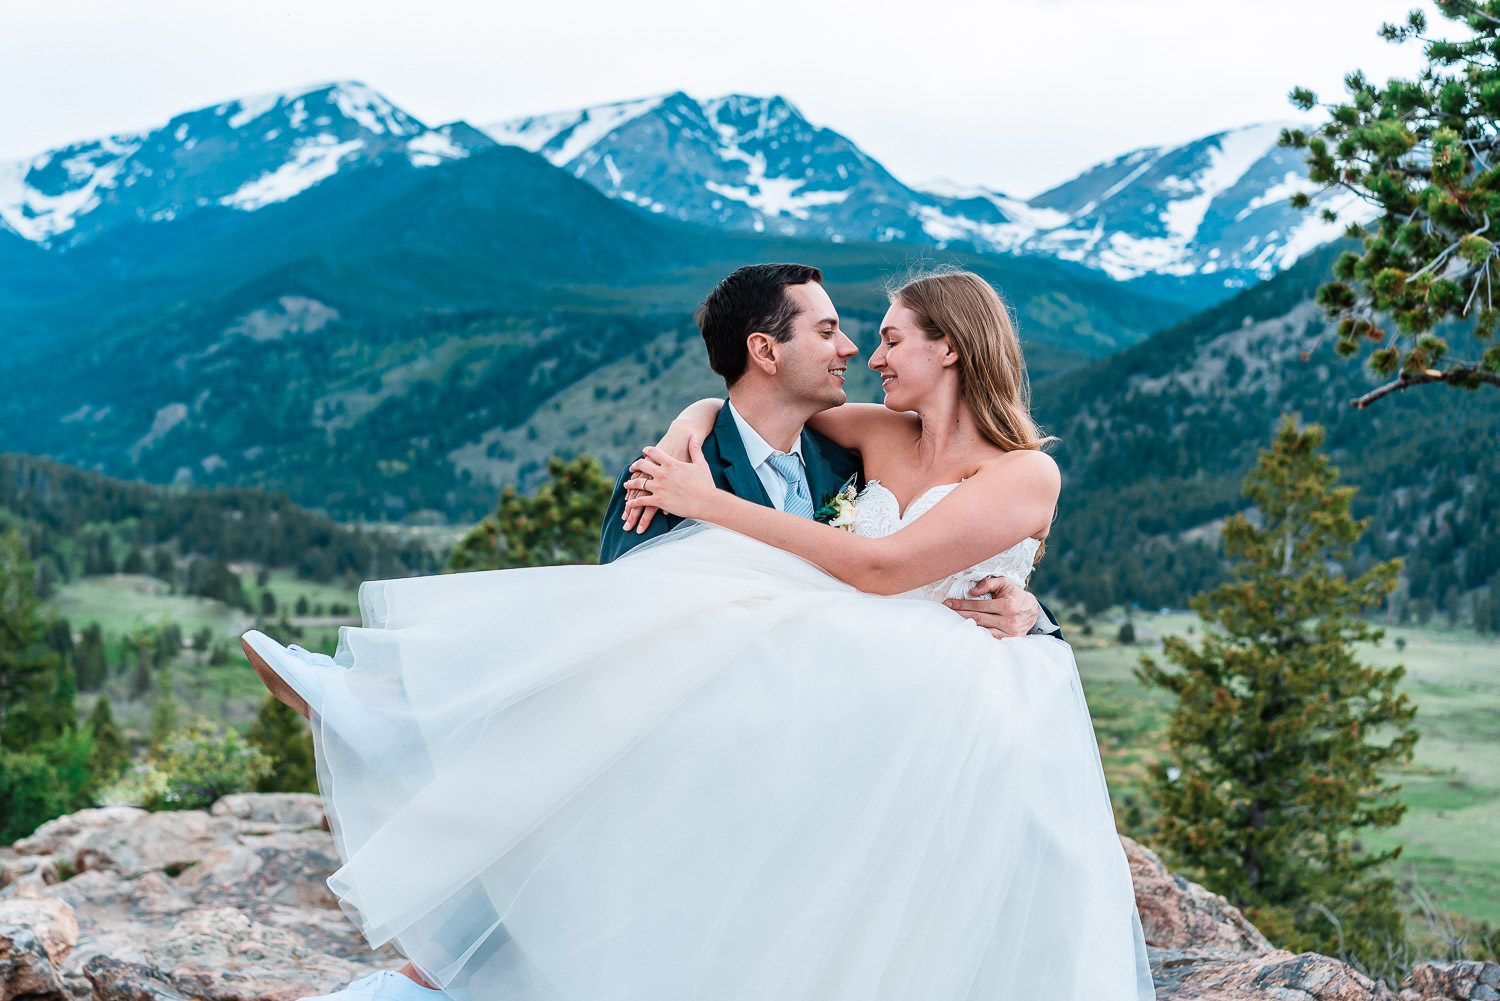 Estes Park Elopement | Run Wild With Me Photography